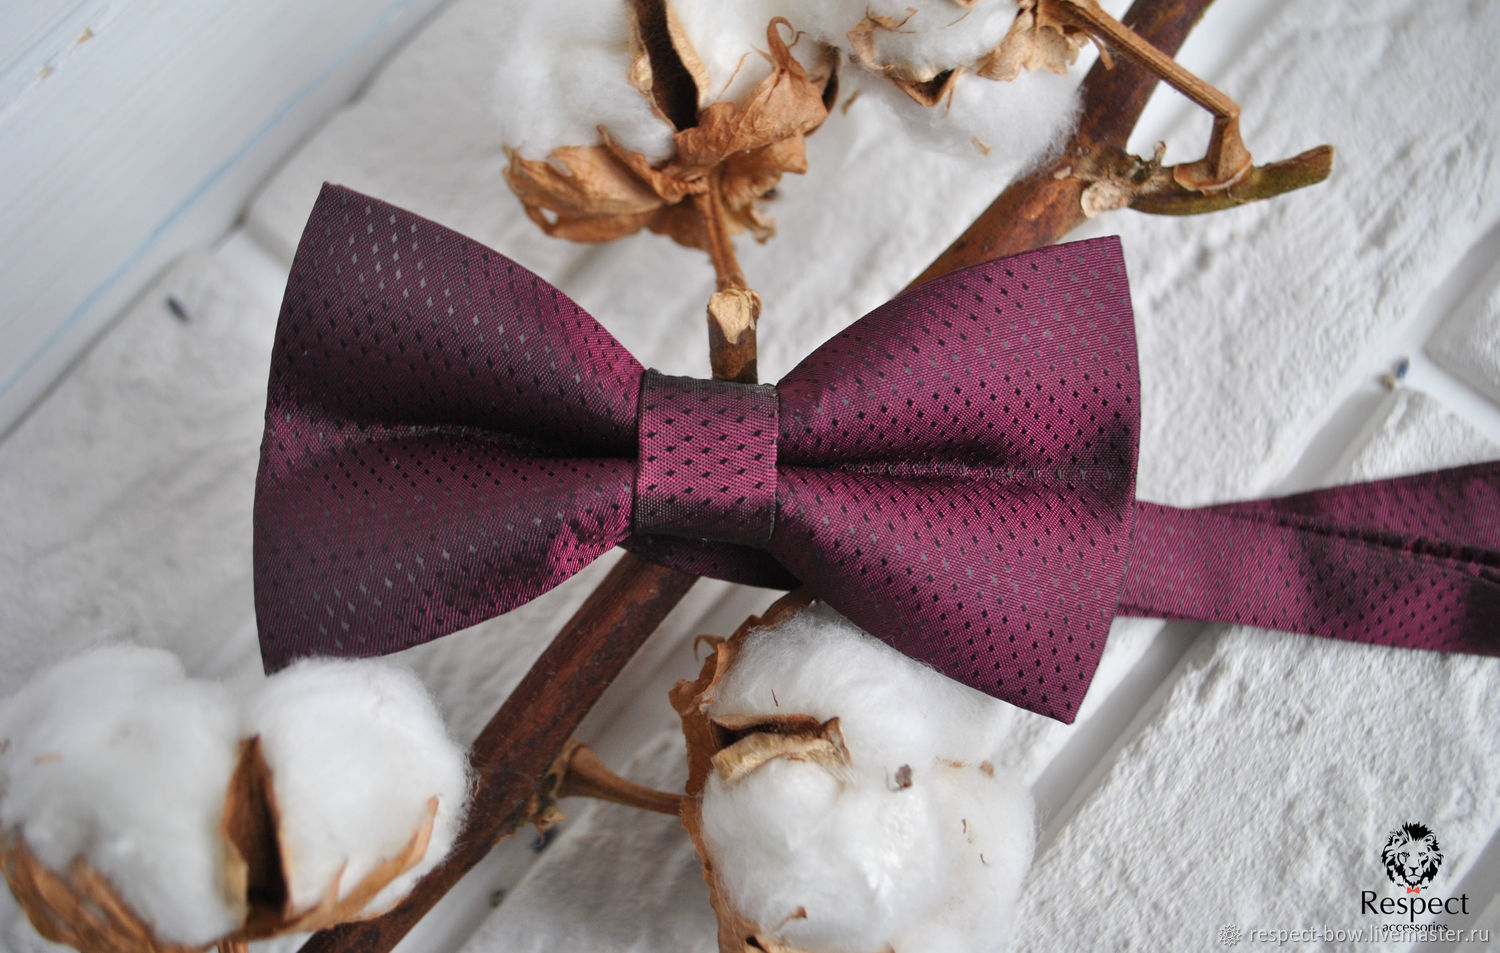 Satin tie necktie Burgundy color in small dots Eclat. You can buy in the online store with operational delivery in Moscow, St. Petersburg or any other city not only of Russia but of the world